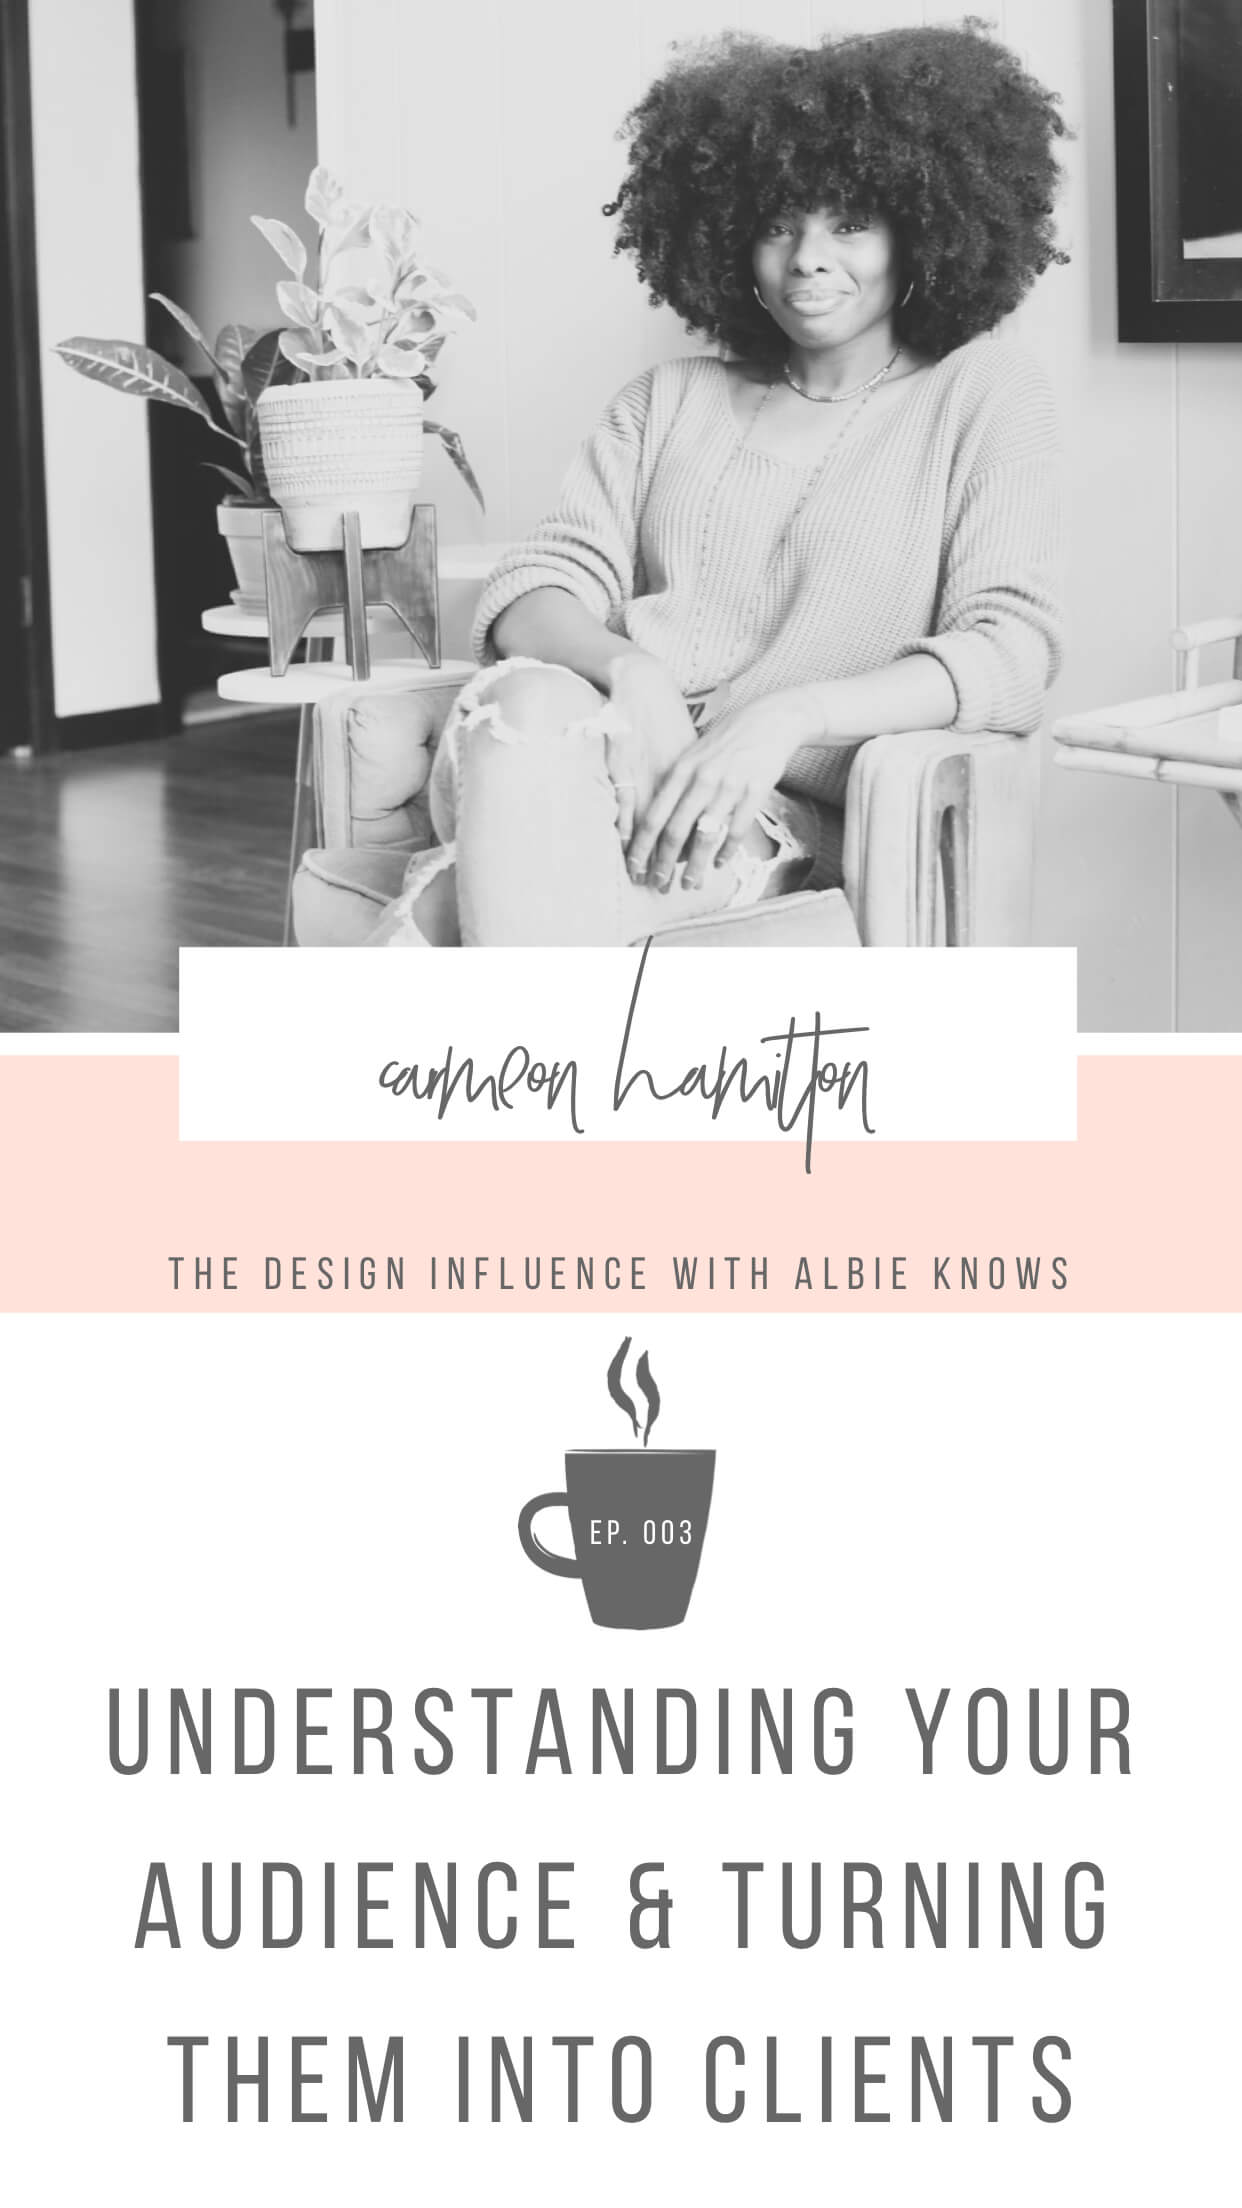 The Design Influence Episode 003: Understanding Your Audience & Turning Them Into Clients with Carmeon Hamilton 1.jpeg